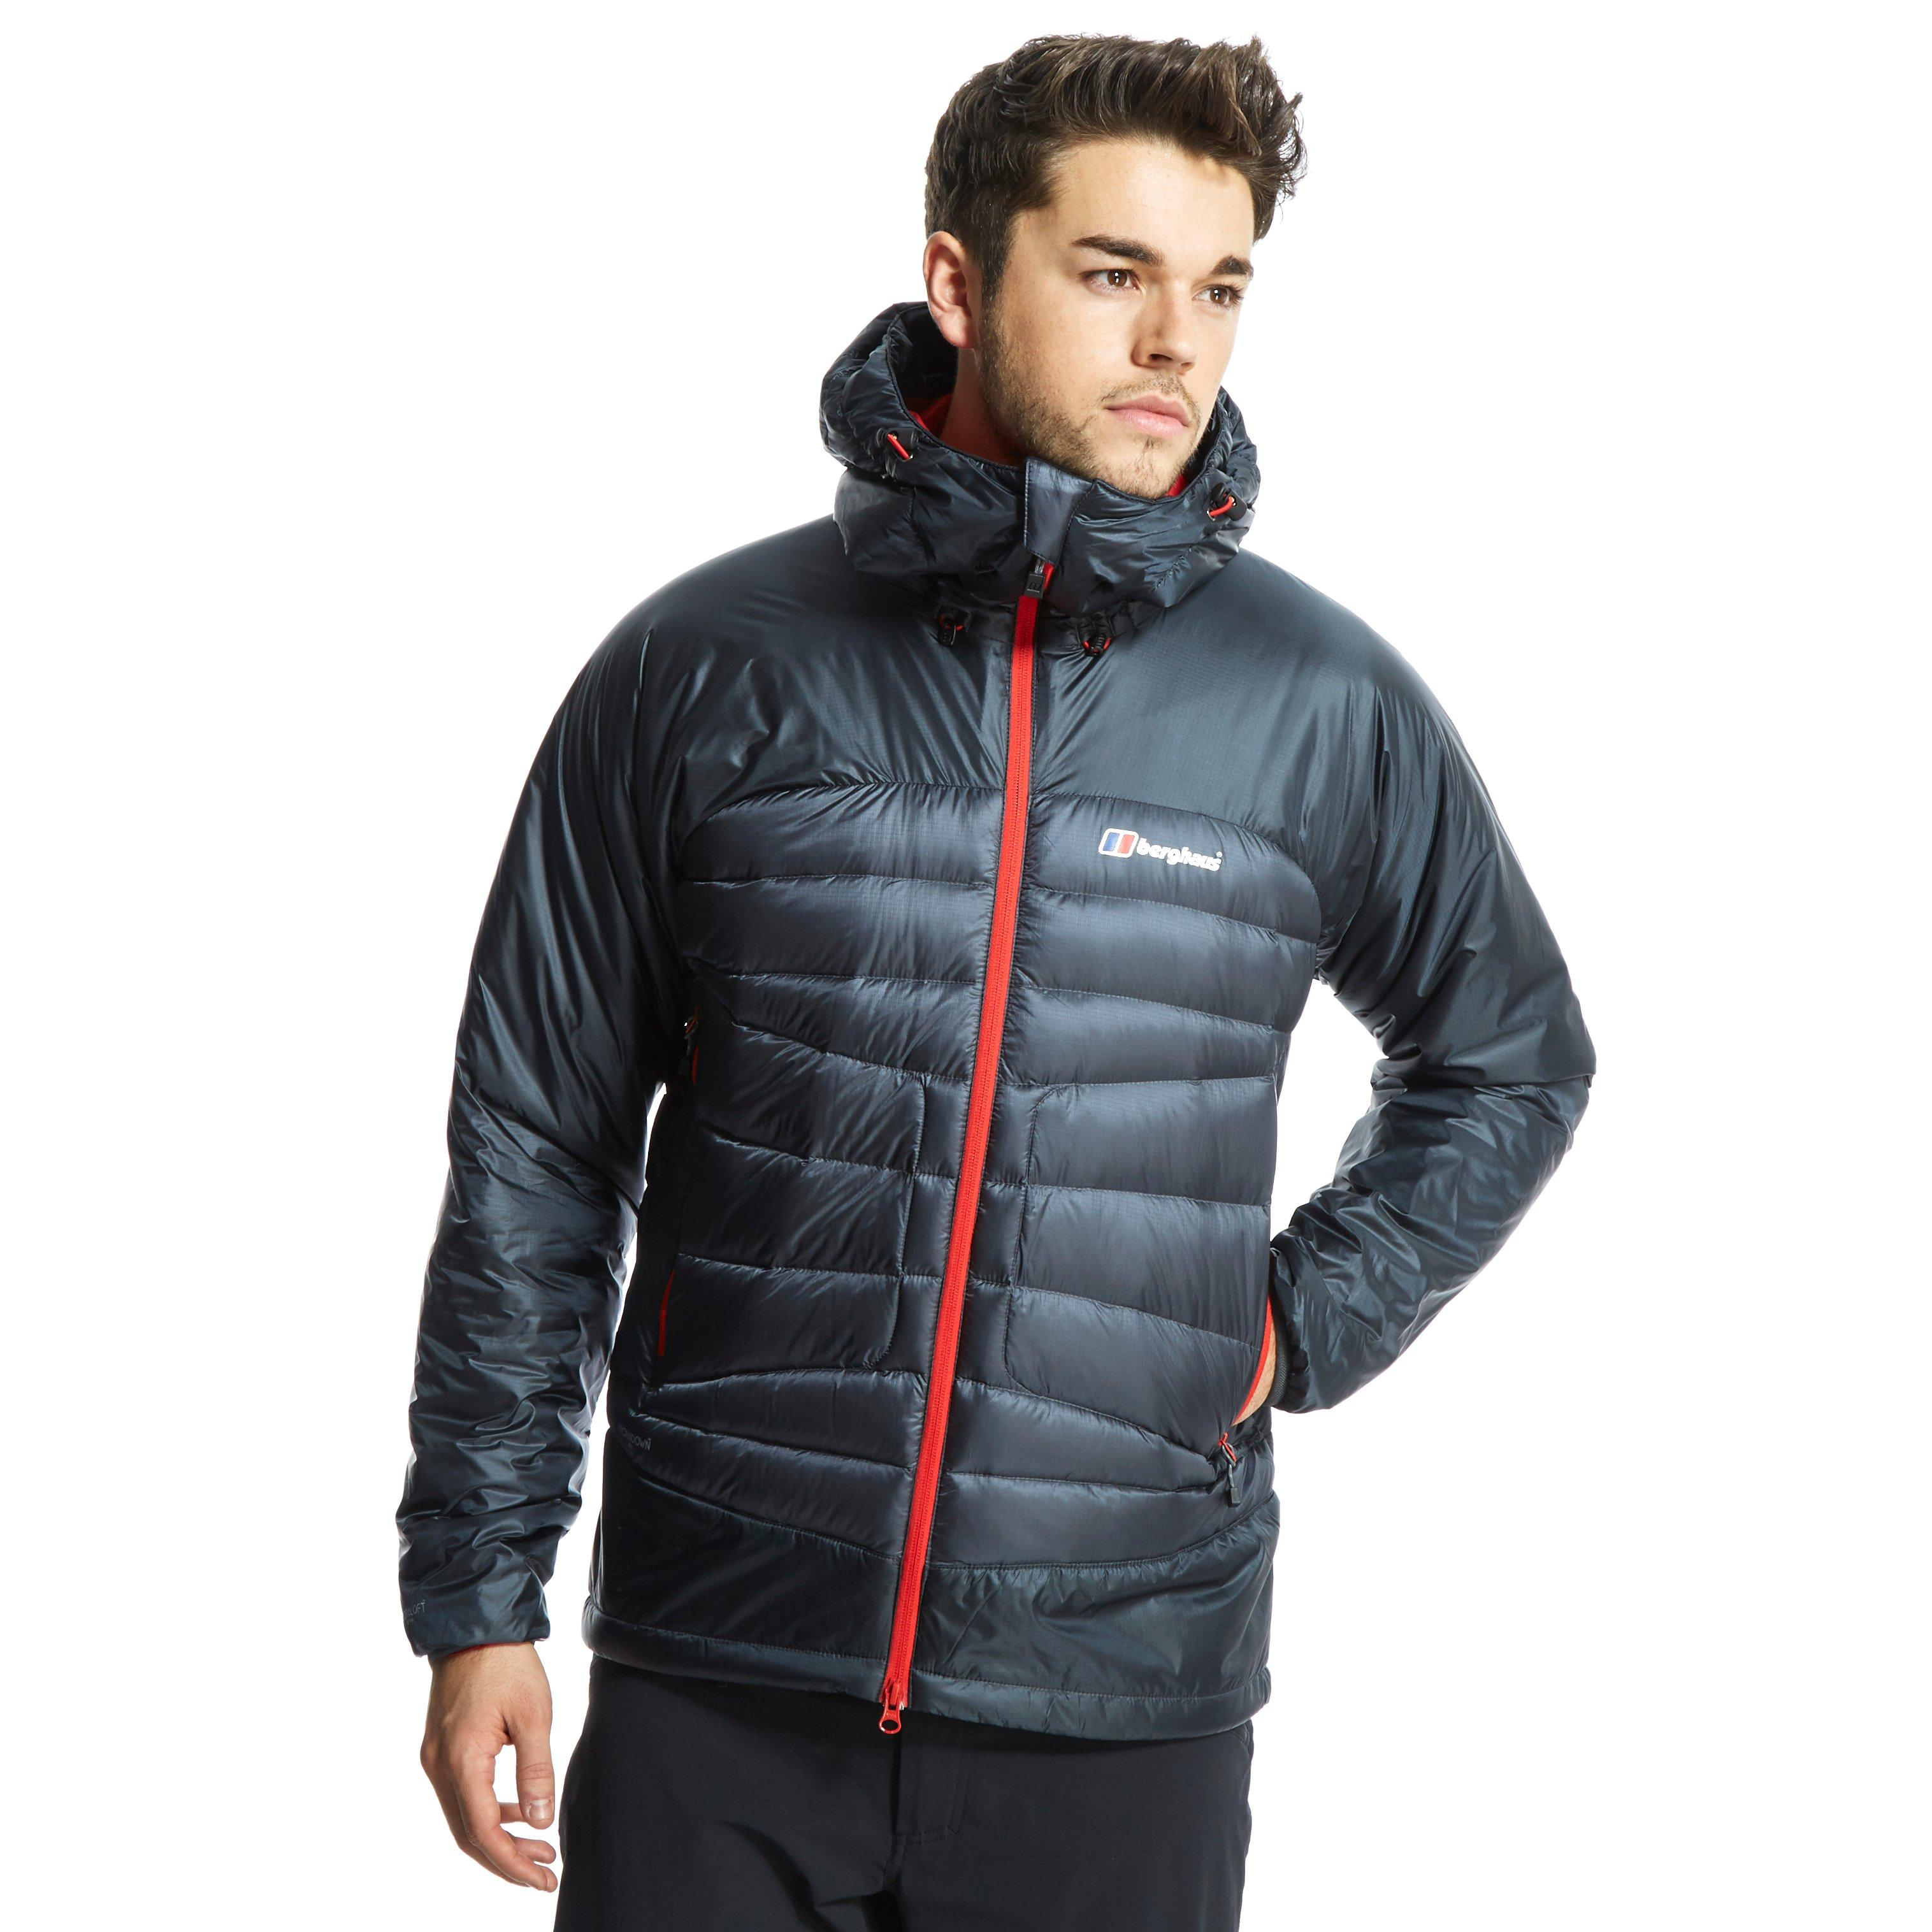 Shop for Men's Down Jackets at REI Outlet - FREE SHIPPING With $50 minimum purchase. Top quality, great selection and expert advice you can trust. % Satisfaction Guarantee. Shop for Men's Down Jackets at REI Outlet - FREE SHIPPING With $50 minimum purchase. Top quality, great selection and expert advice you can trust. % Satisfaction Guarantee.